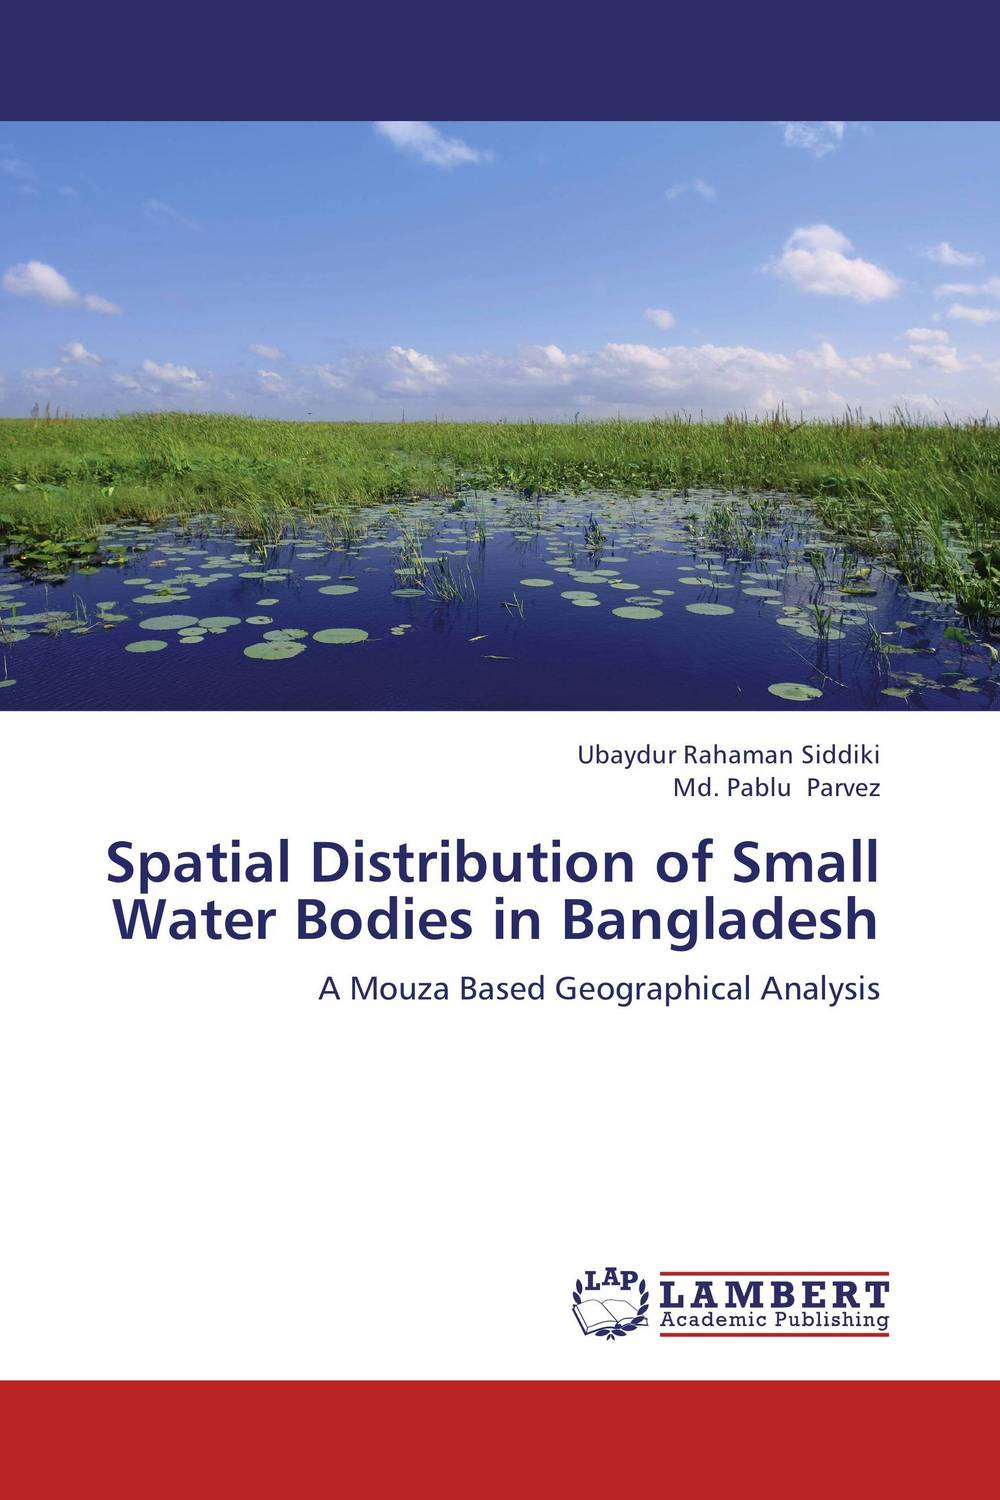 Spatial Distribution of Small Water Bodies in Bangladesh bride of the water god v 3